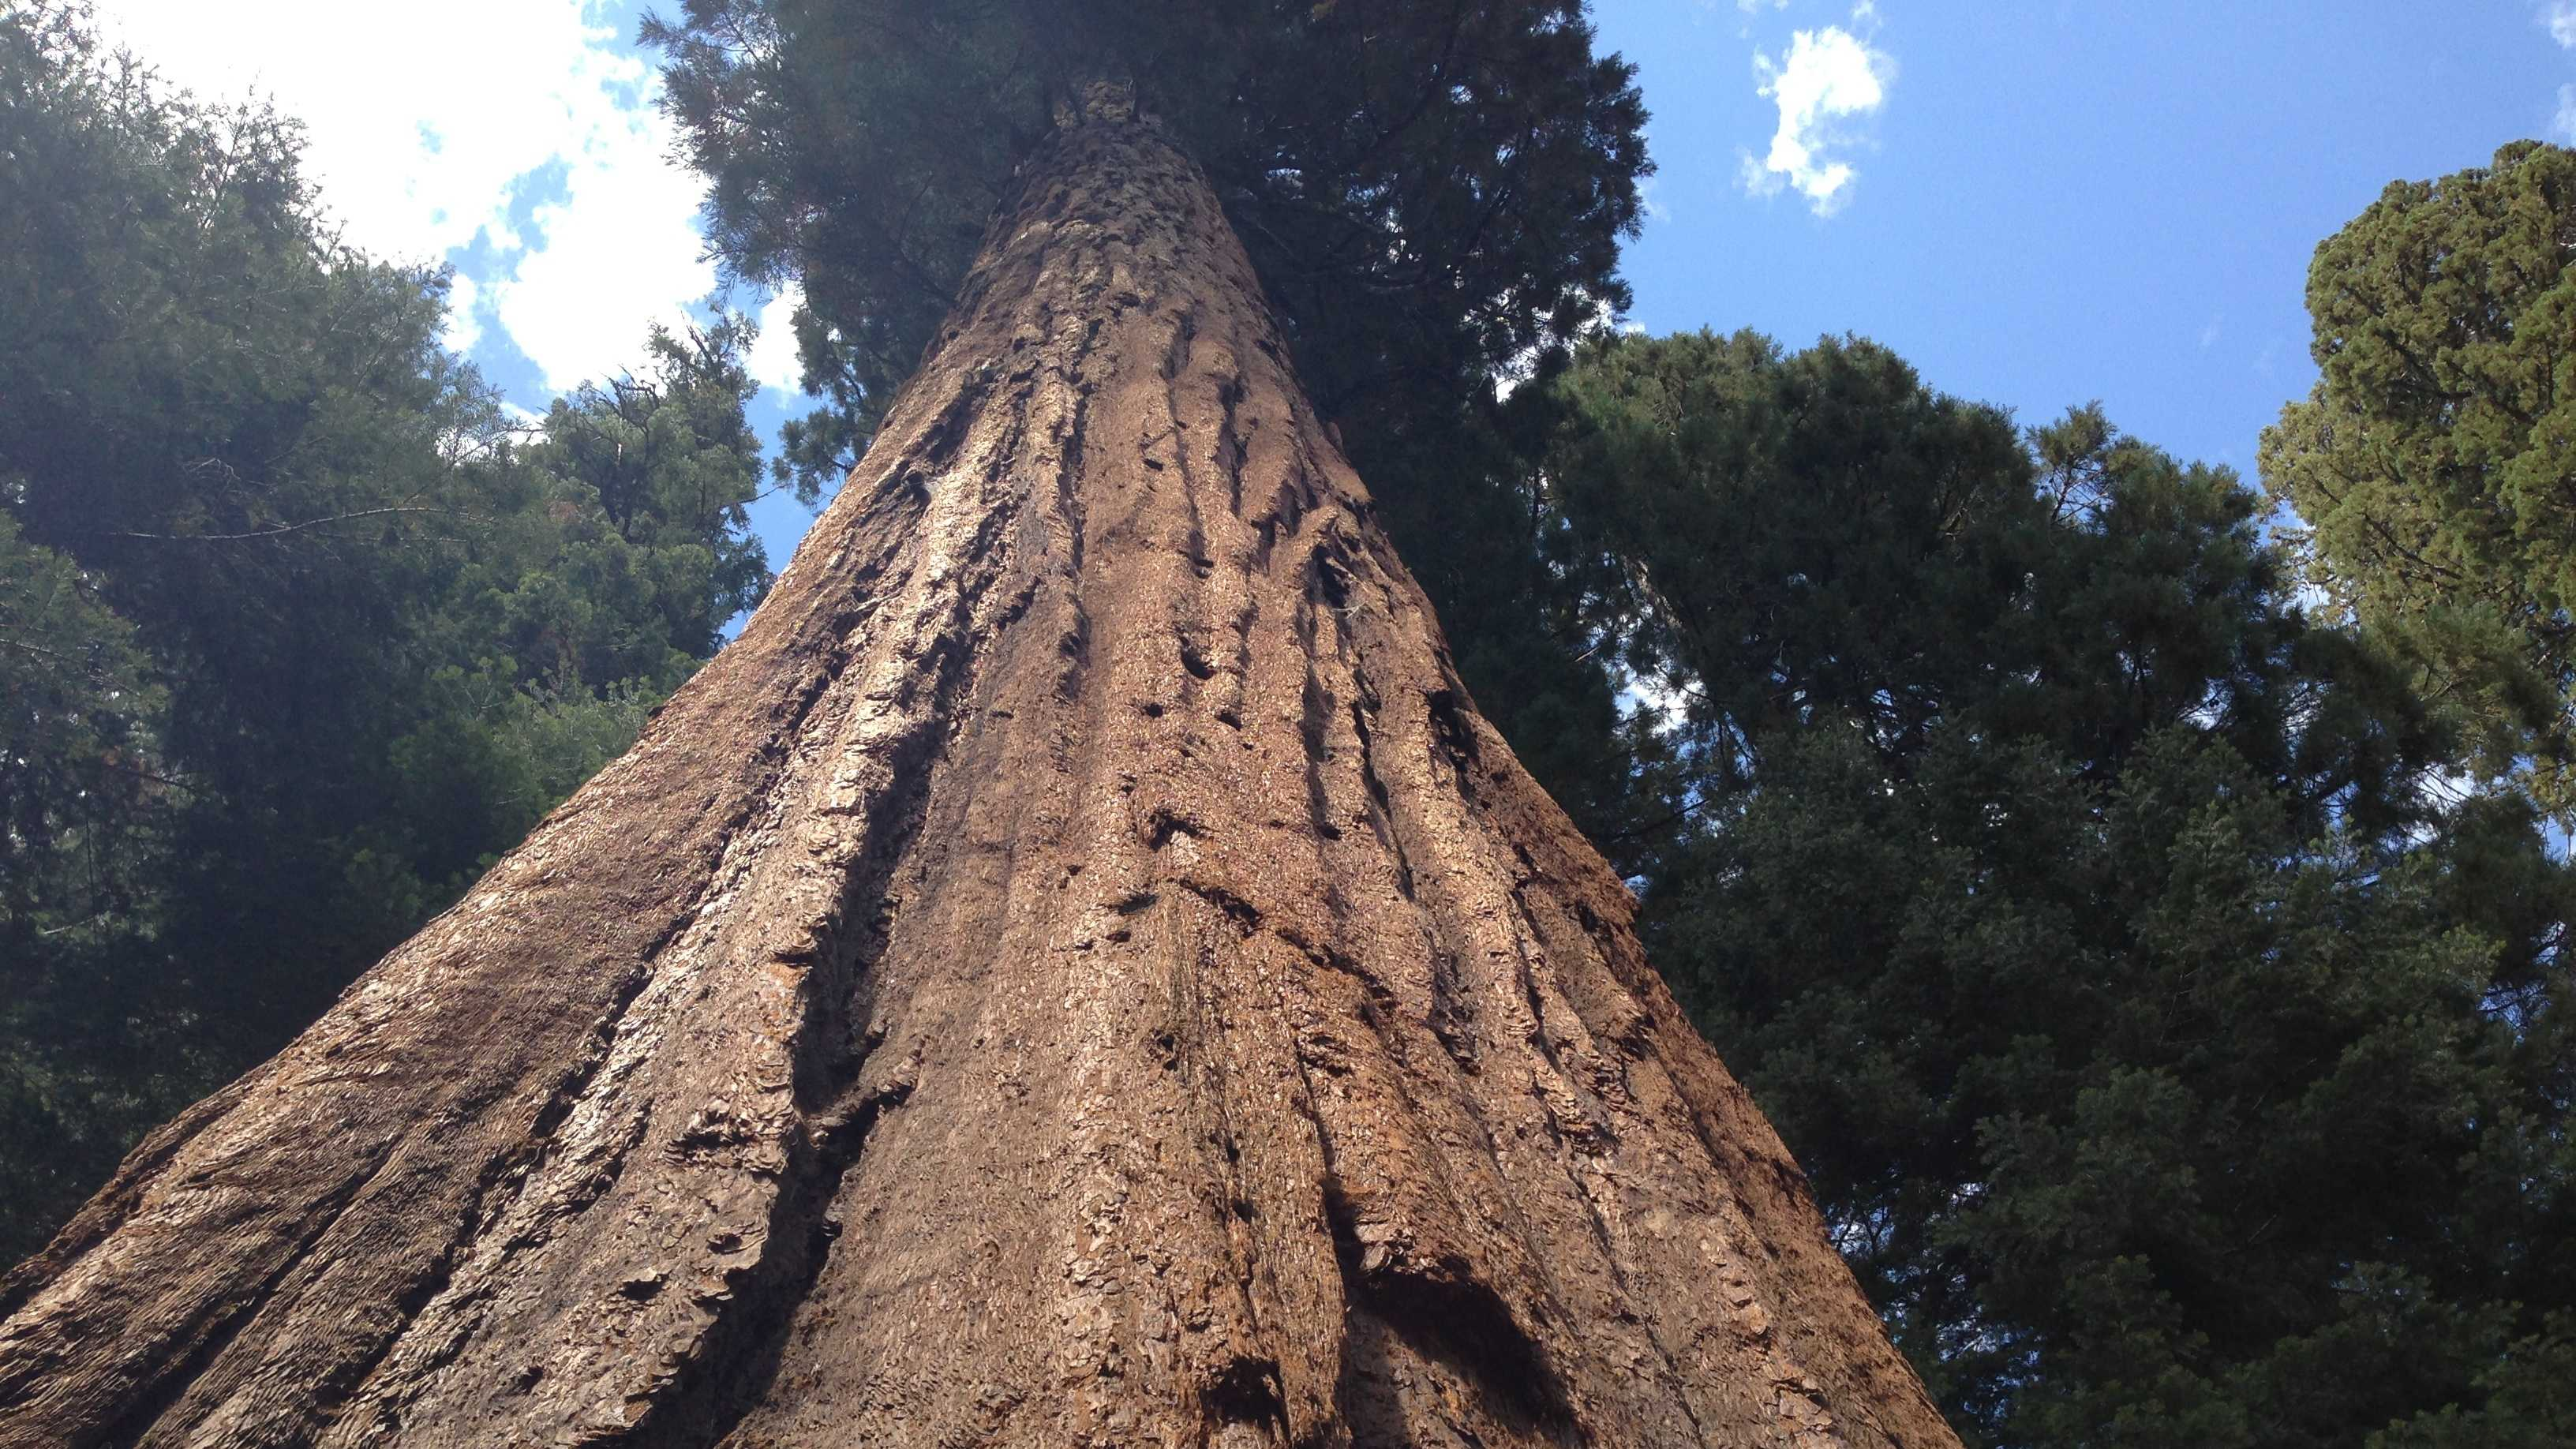 Giant sequoias have thick park, which contains a fire-resistant chemical, but are not immune to large, hot wildfires.